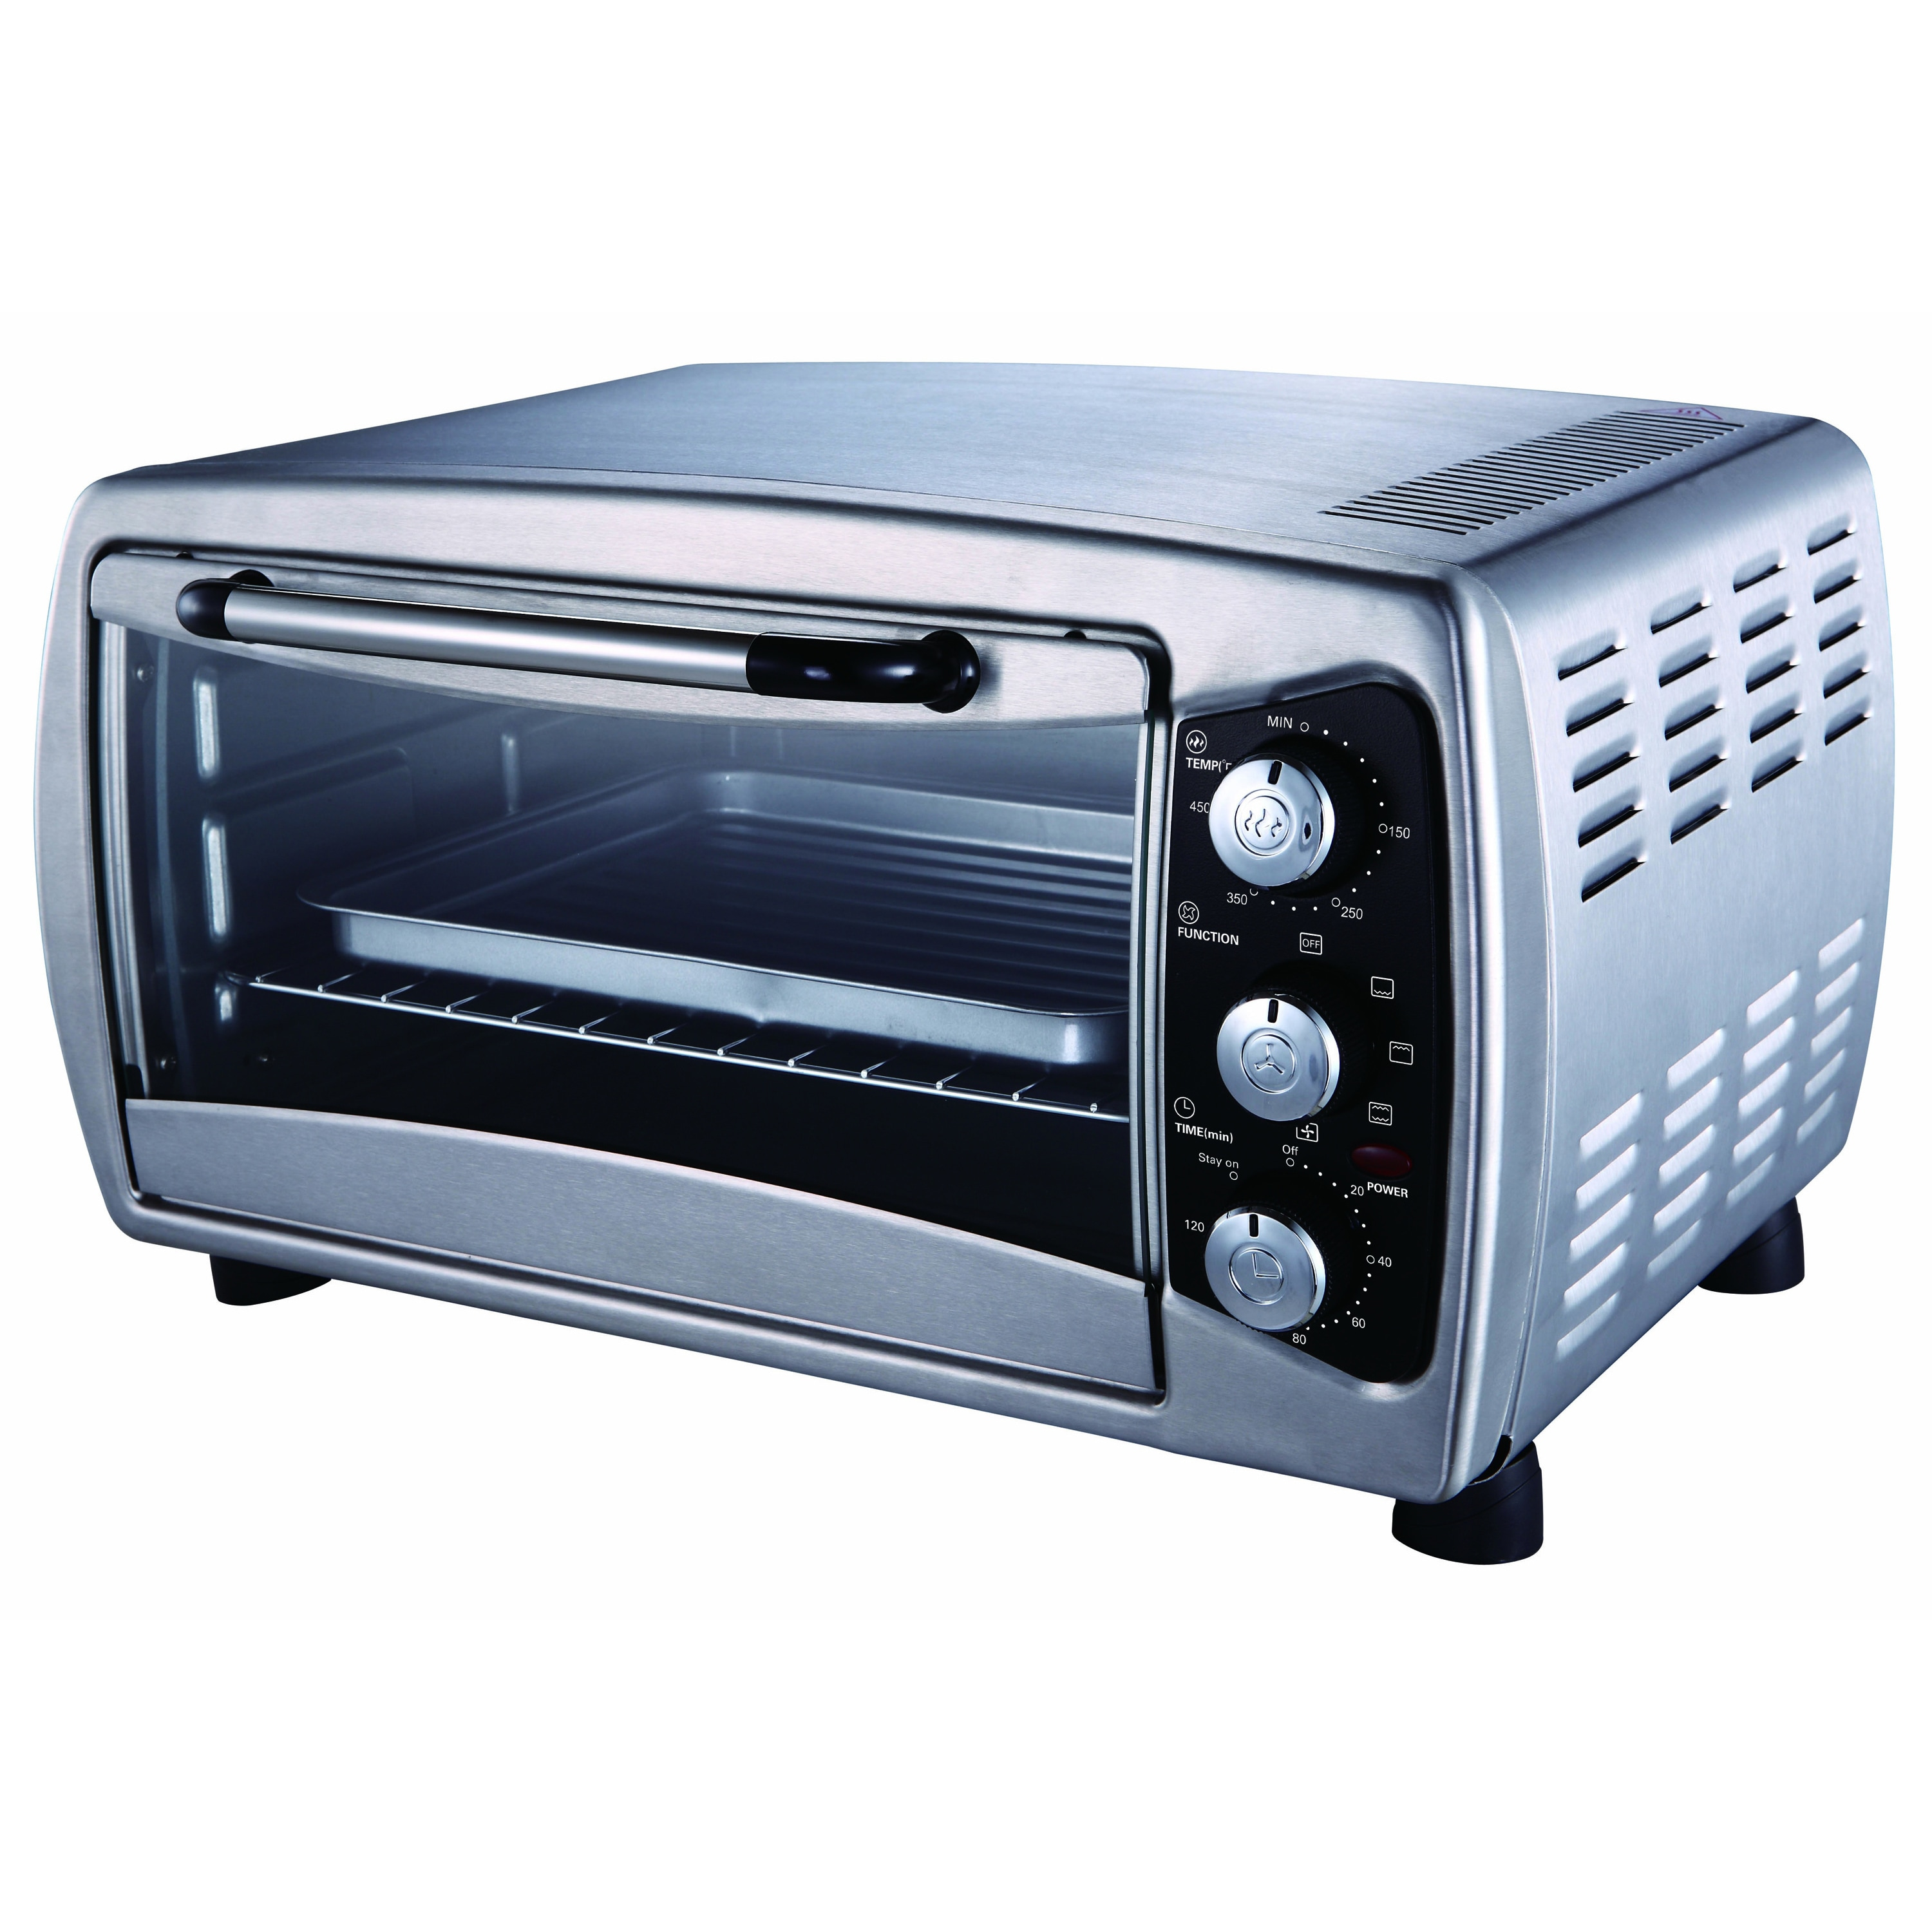 SPT Stainless Countertop Convection Toaster Oven at Sears.com